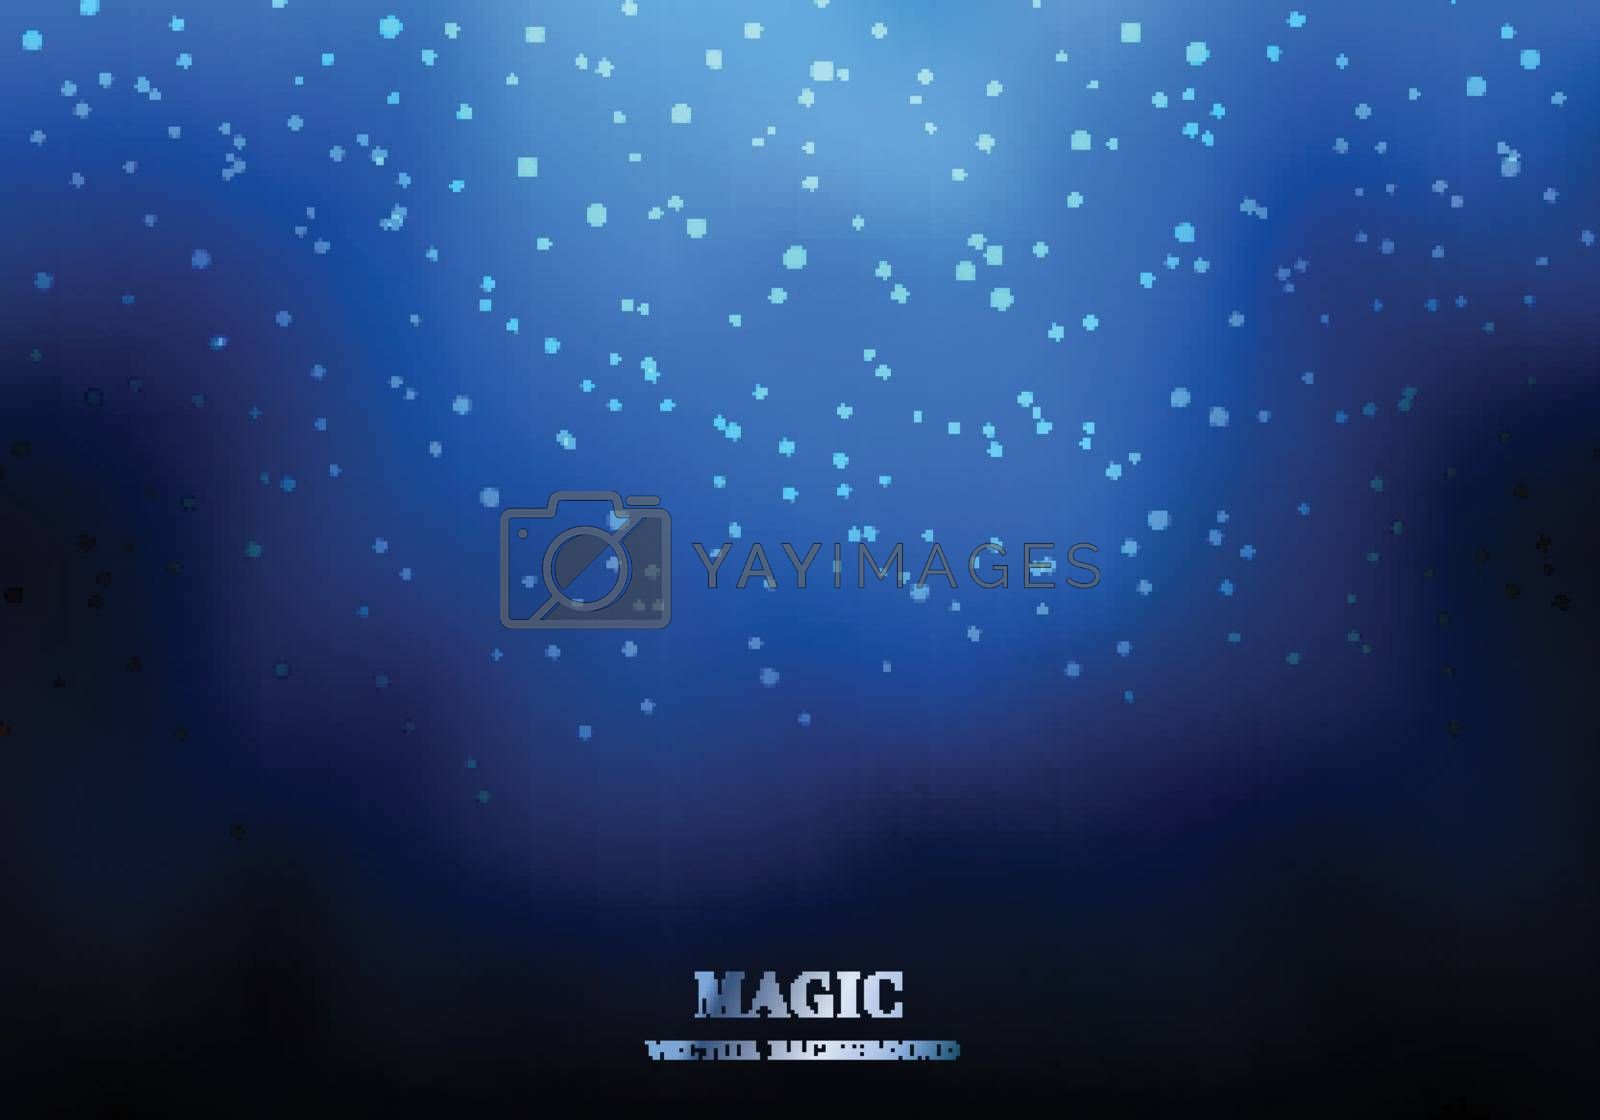 Royalty free image of Magic night blue sky background with sparkling glitter. by phochi